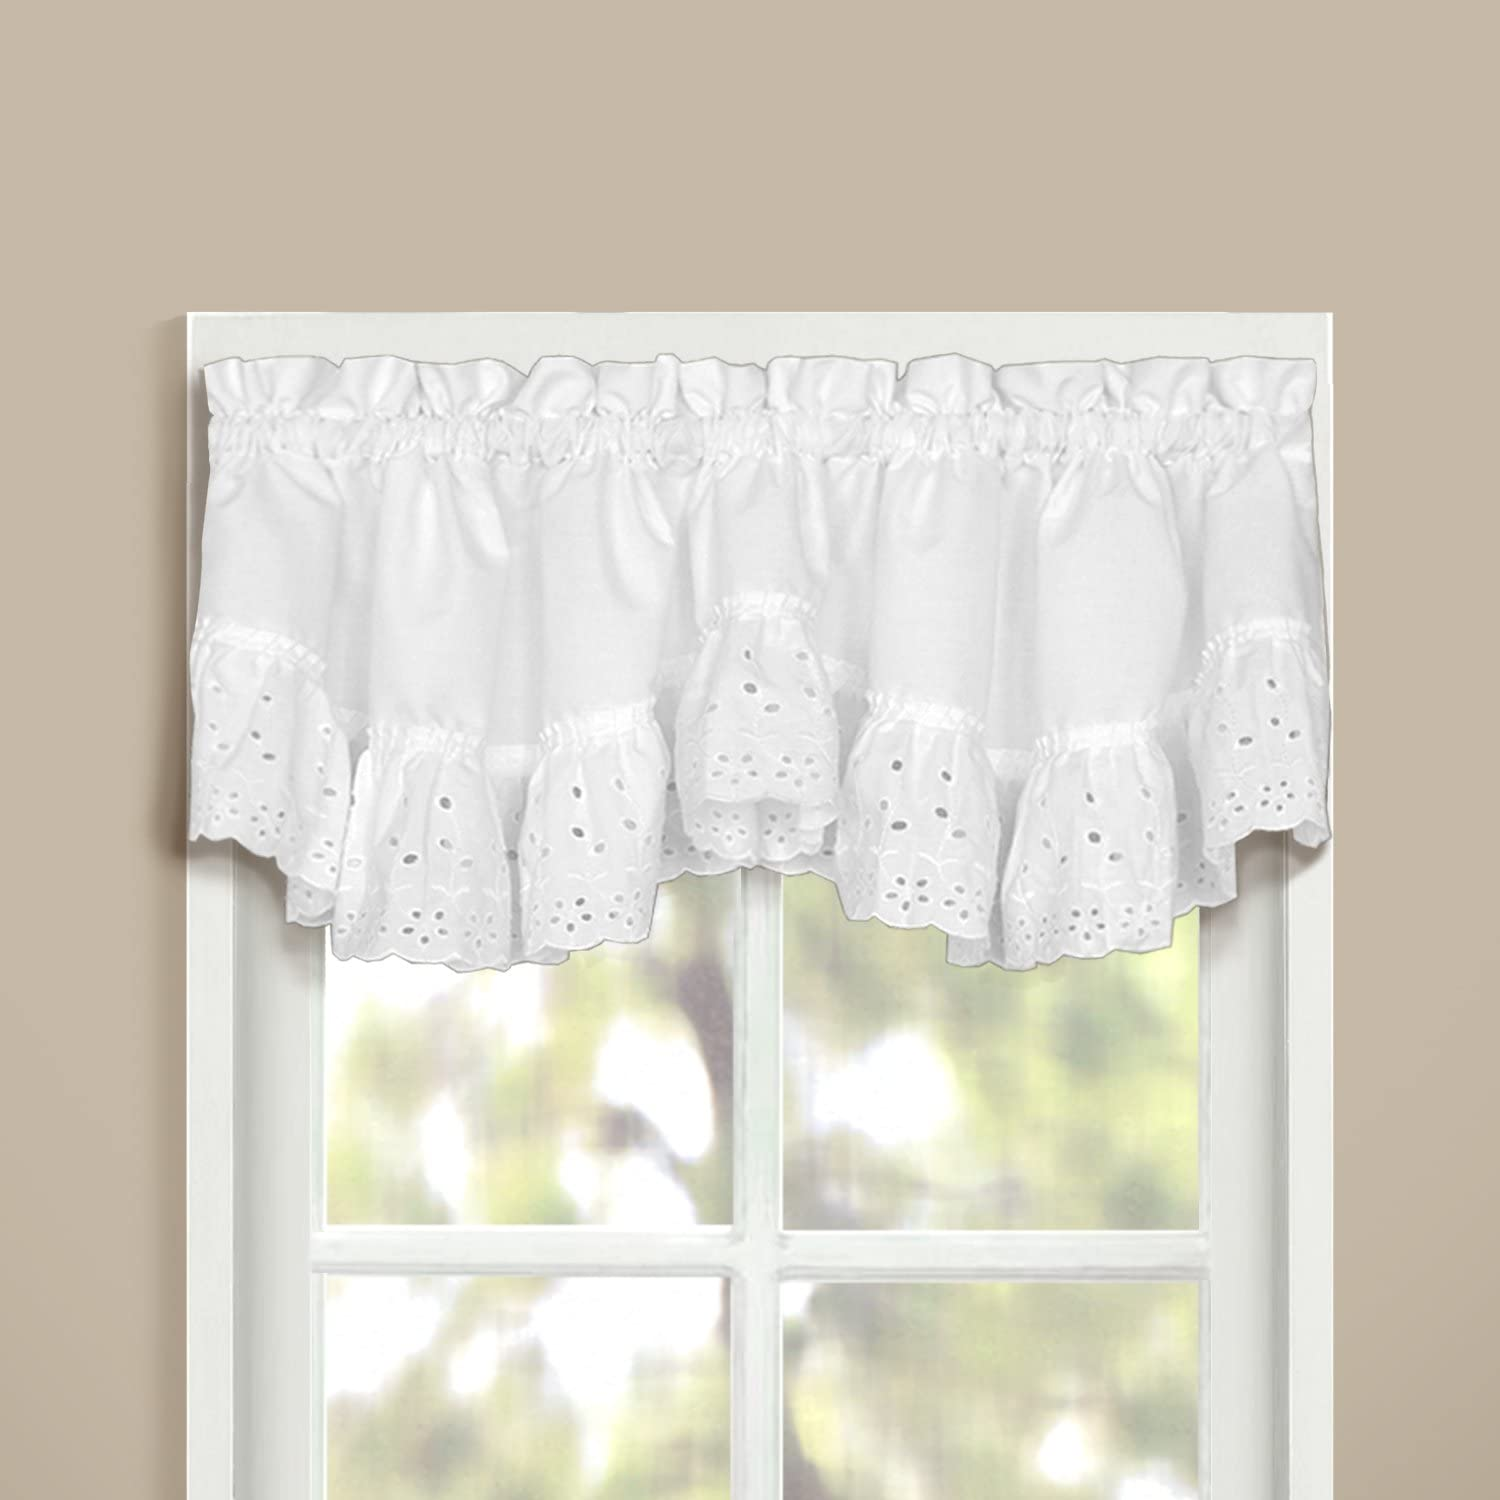 American Curtain and Home Deanna Window Treatment Valance, 60-Inch by 12-Inch, White